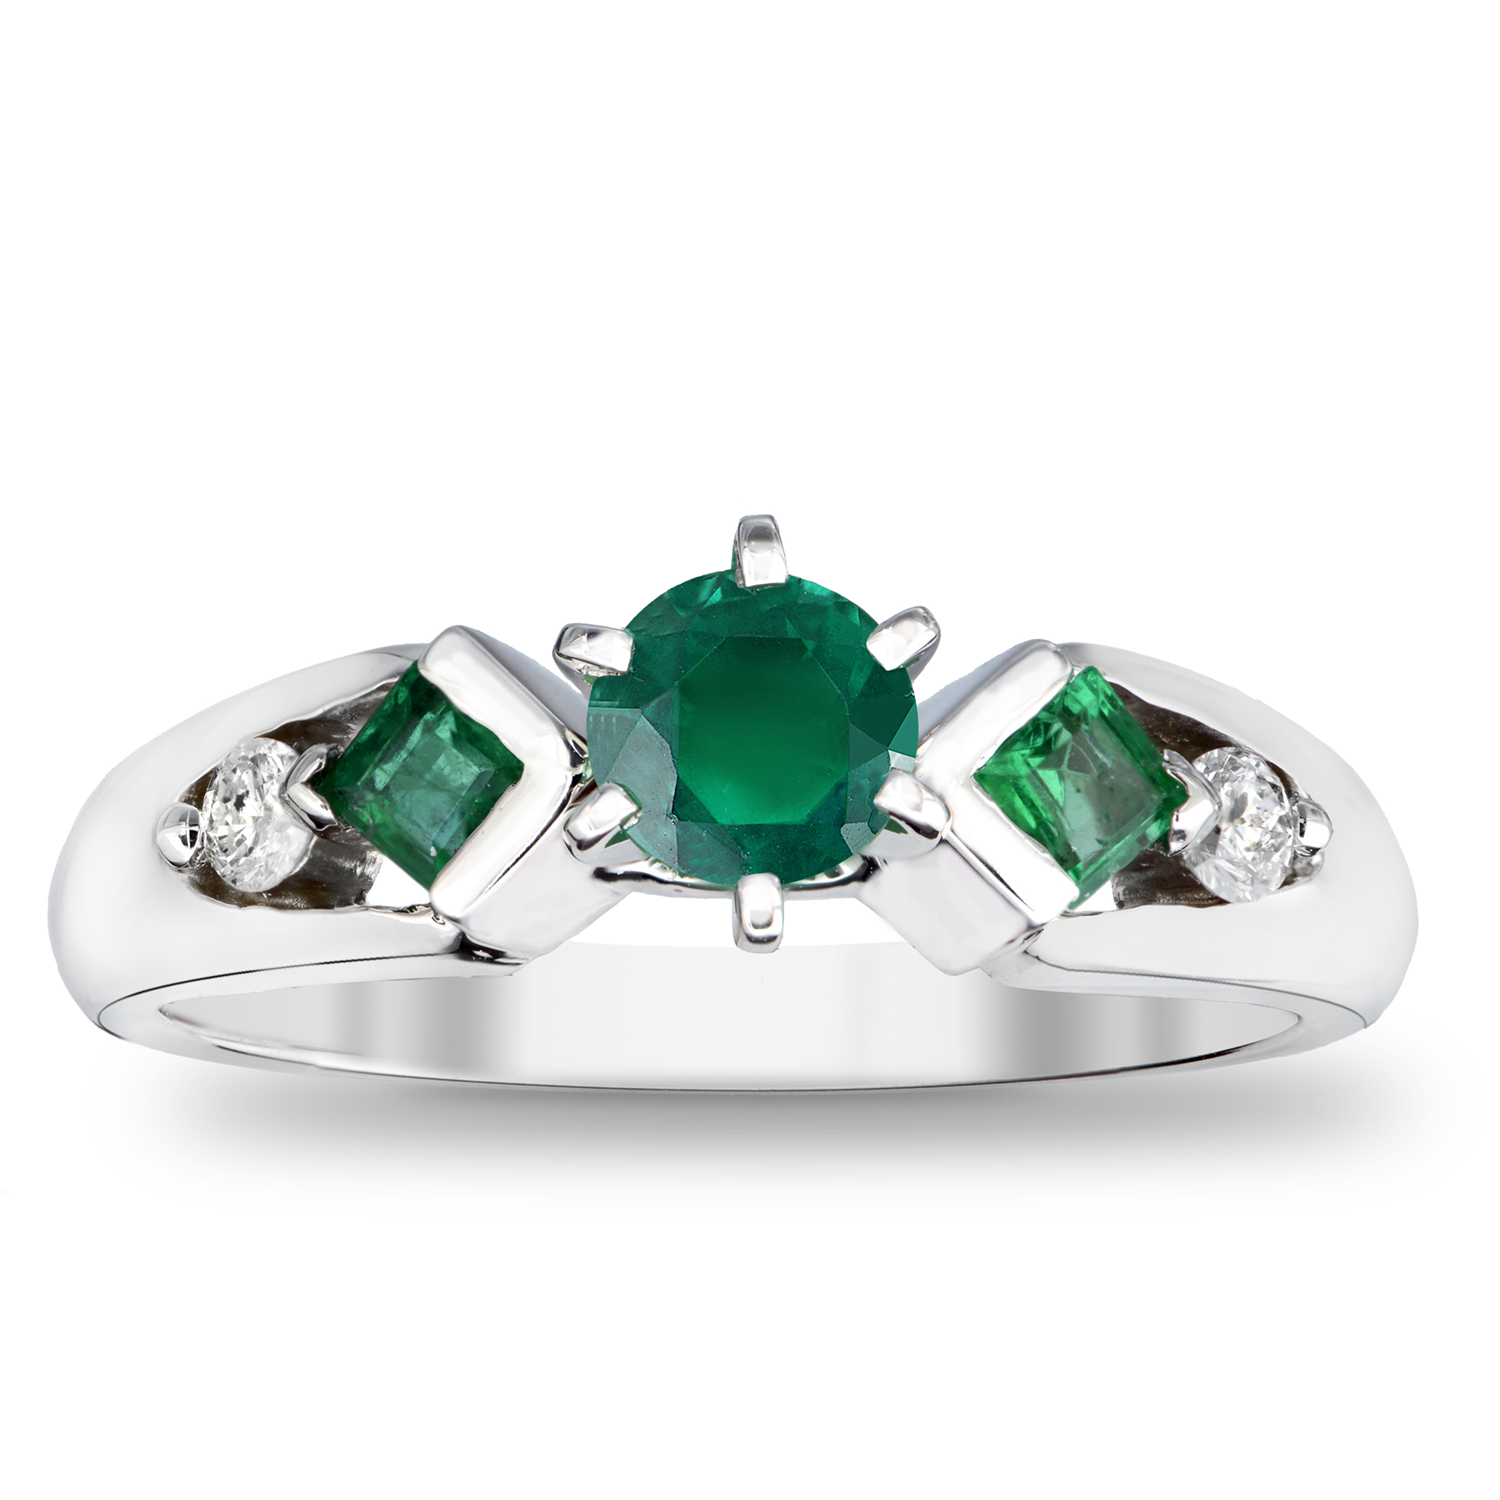 View 0.80cttw Emerald and Diamond Engagement Ring in 14k Gold